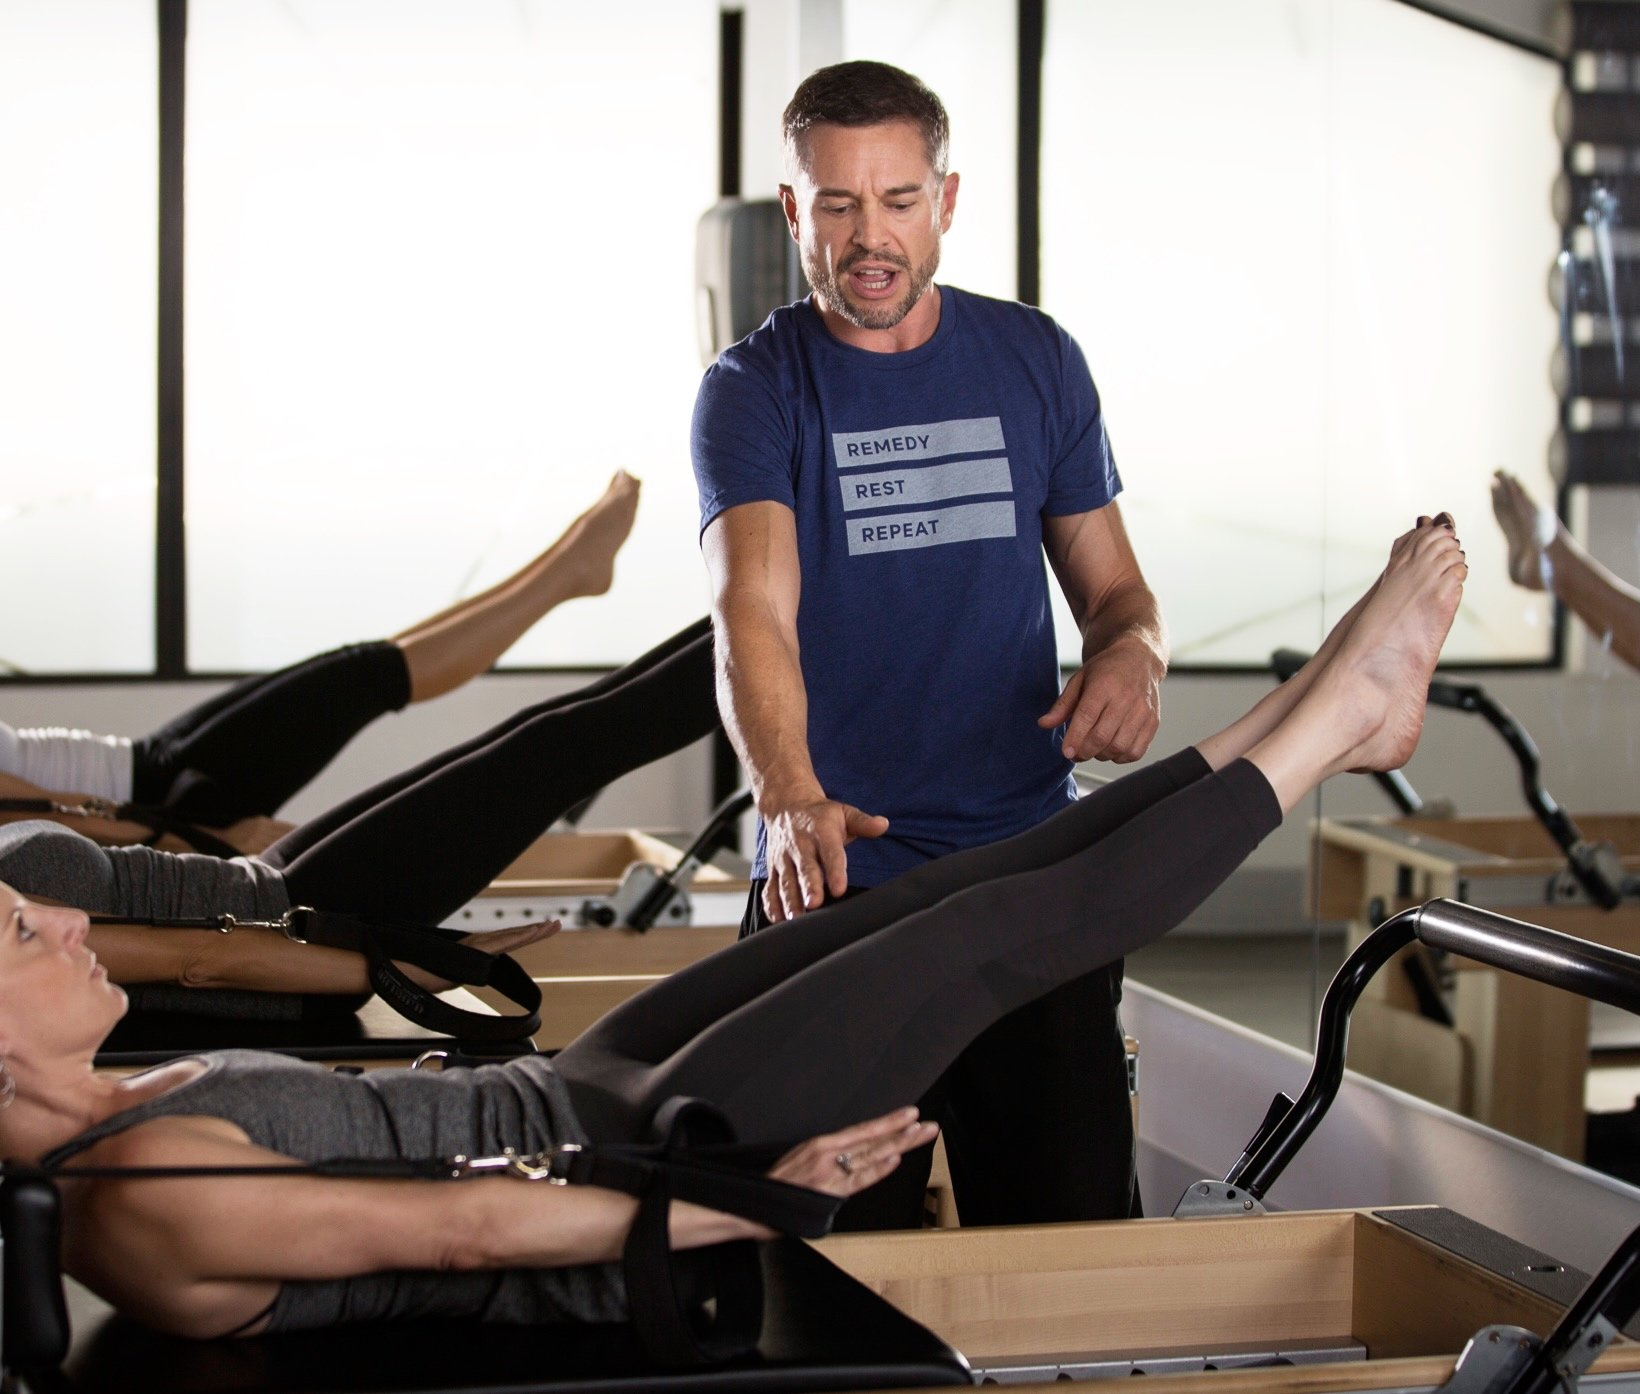 Steve Mazich with Remedy Pilates and Barre